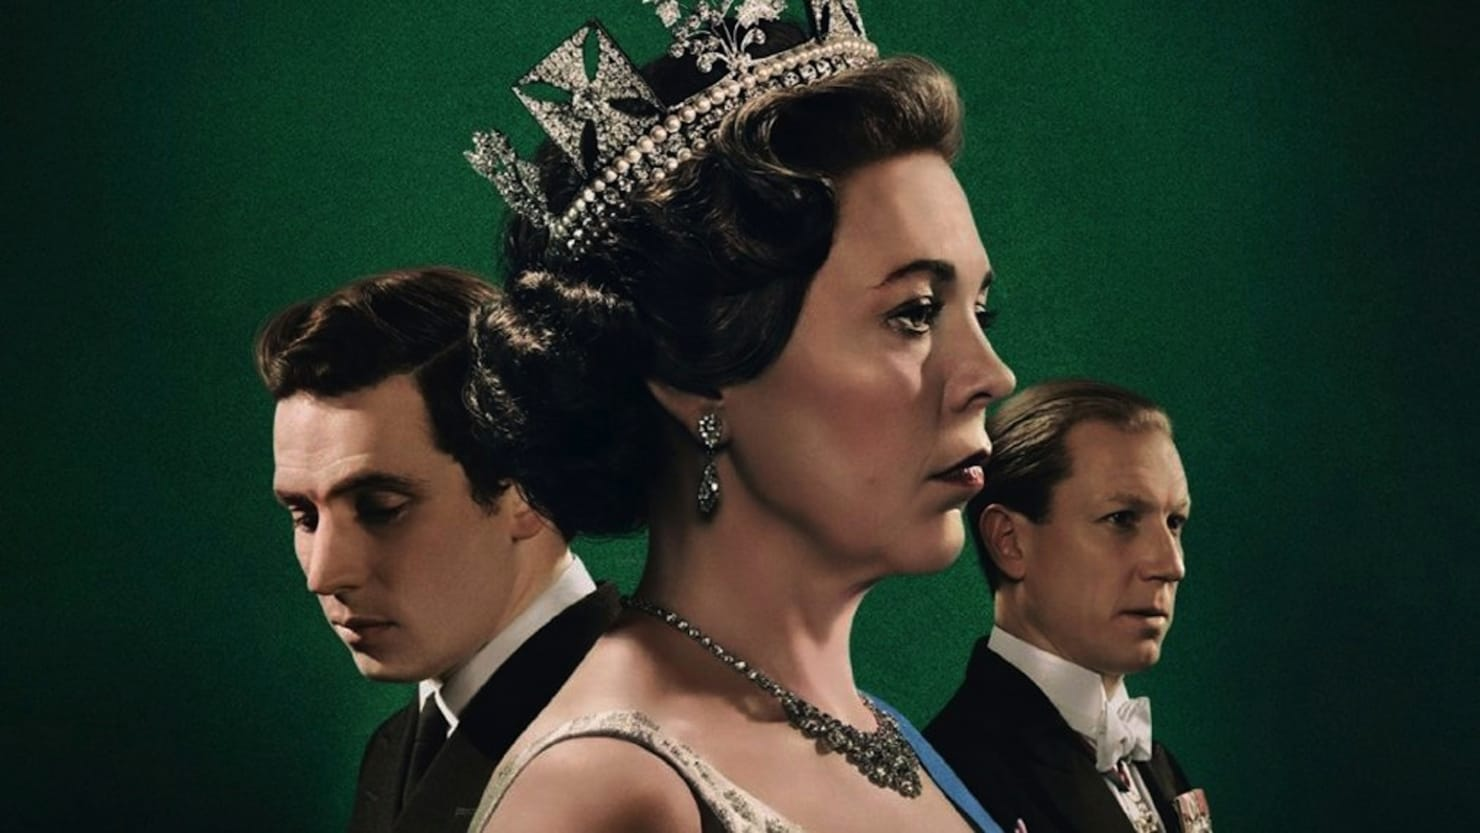 'The Crown' Season 3: Olivia Colman Shines as Queen Rocked By Tragedy, Scandal, and Camilla Parker Bowles